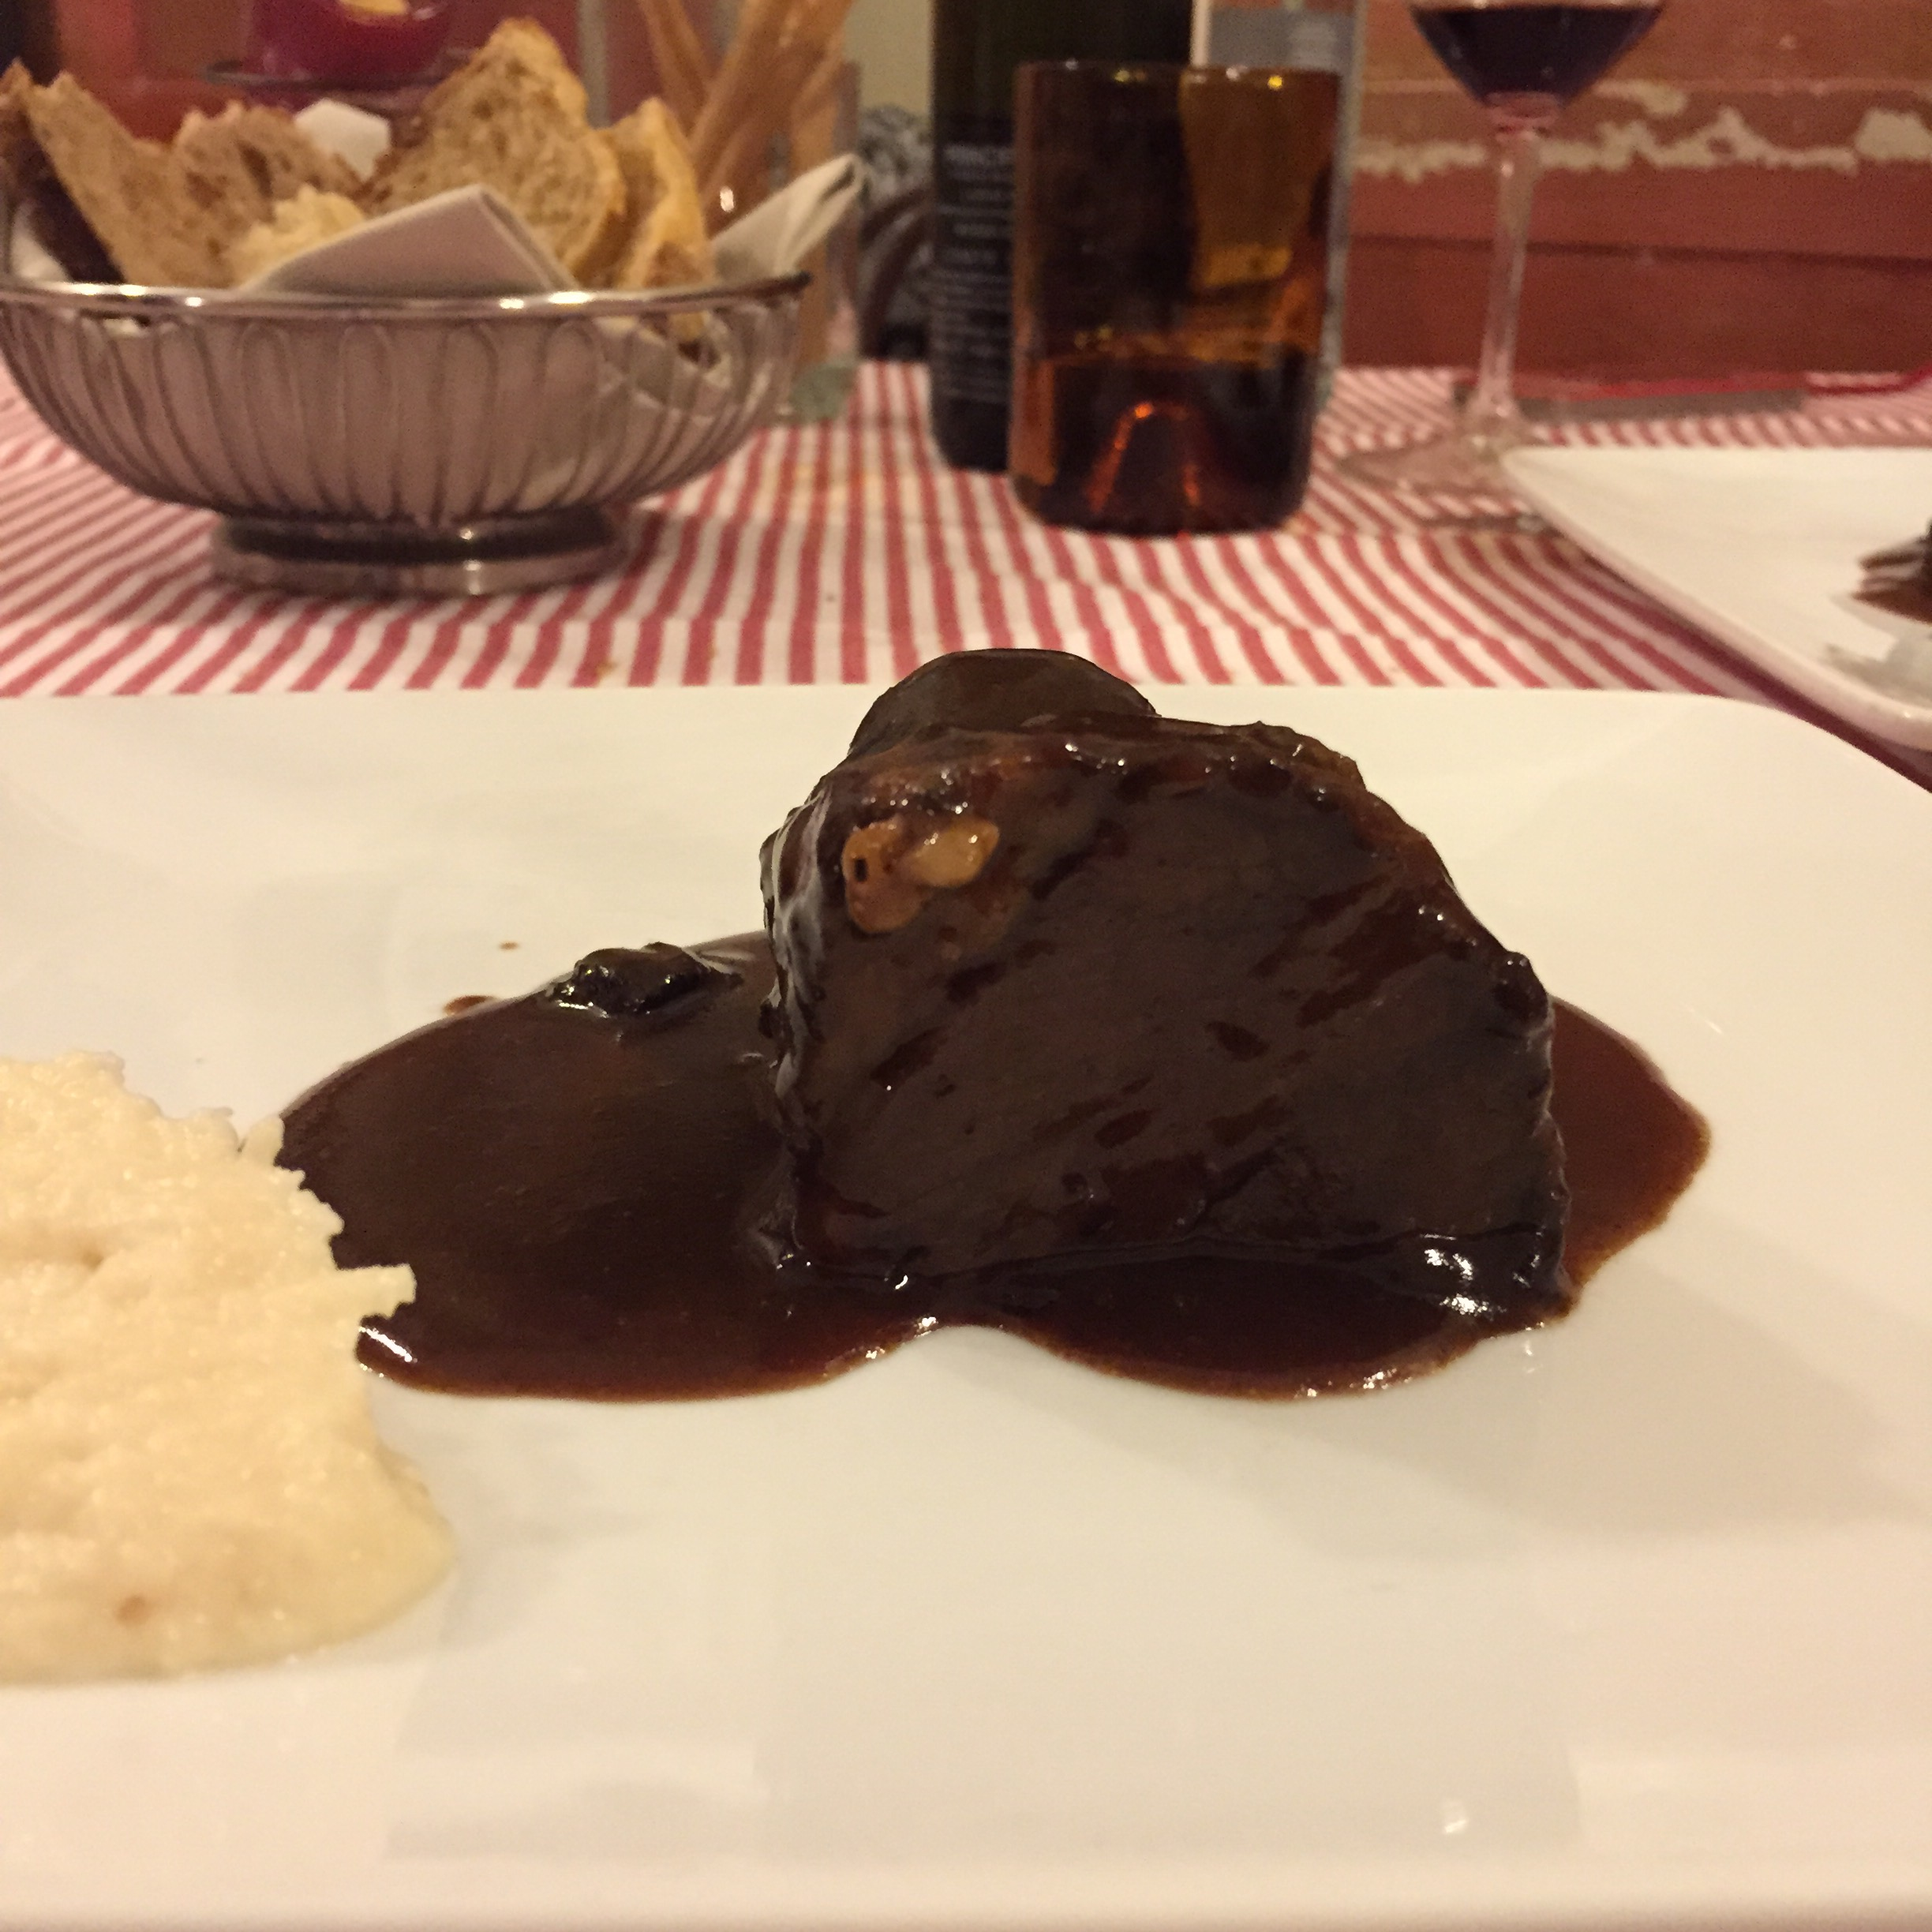 Fassone beef slow cooked in Ruche red wine served with turnip and celery puree (Il Consorzio, Torino)